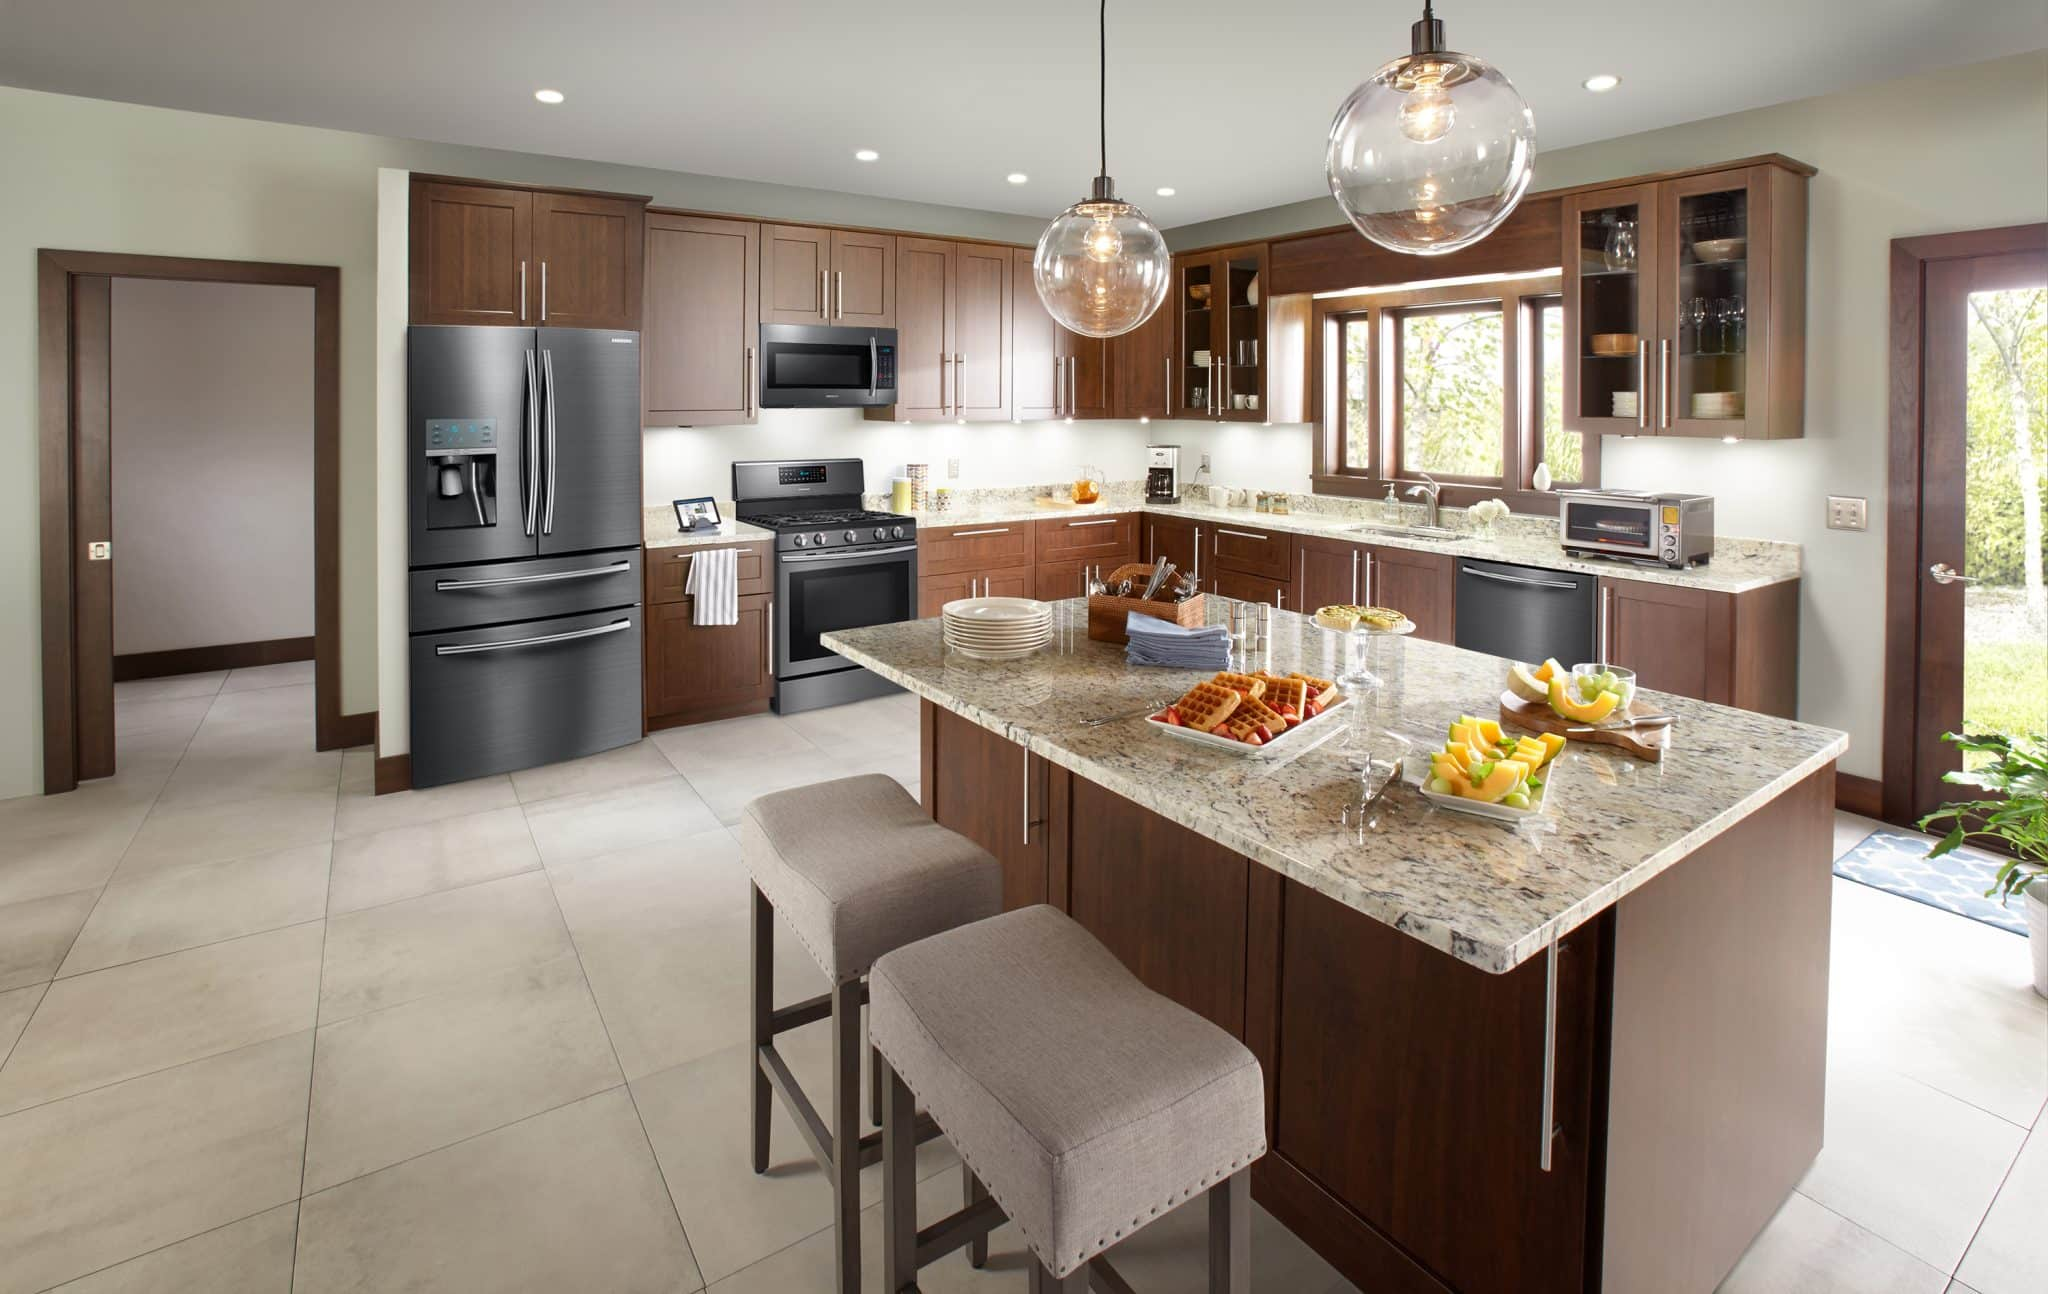 Remodel Your Kitchen With Samsung Appliances Bestbuy